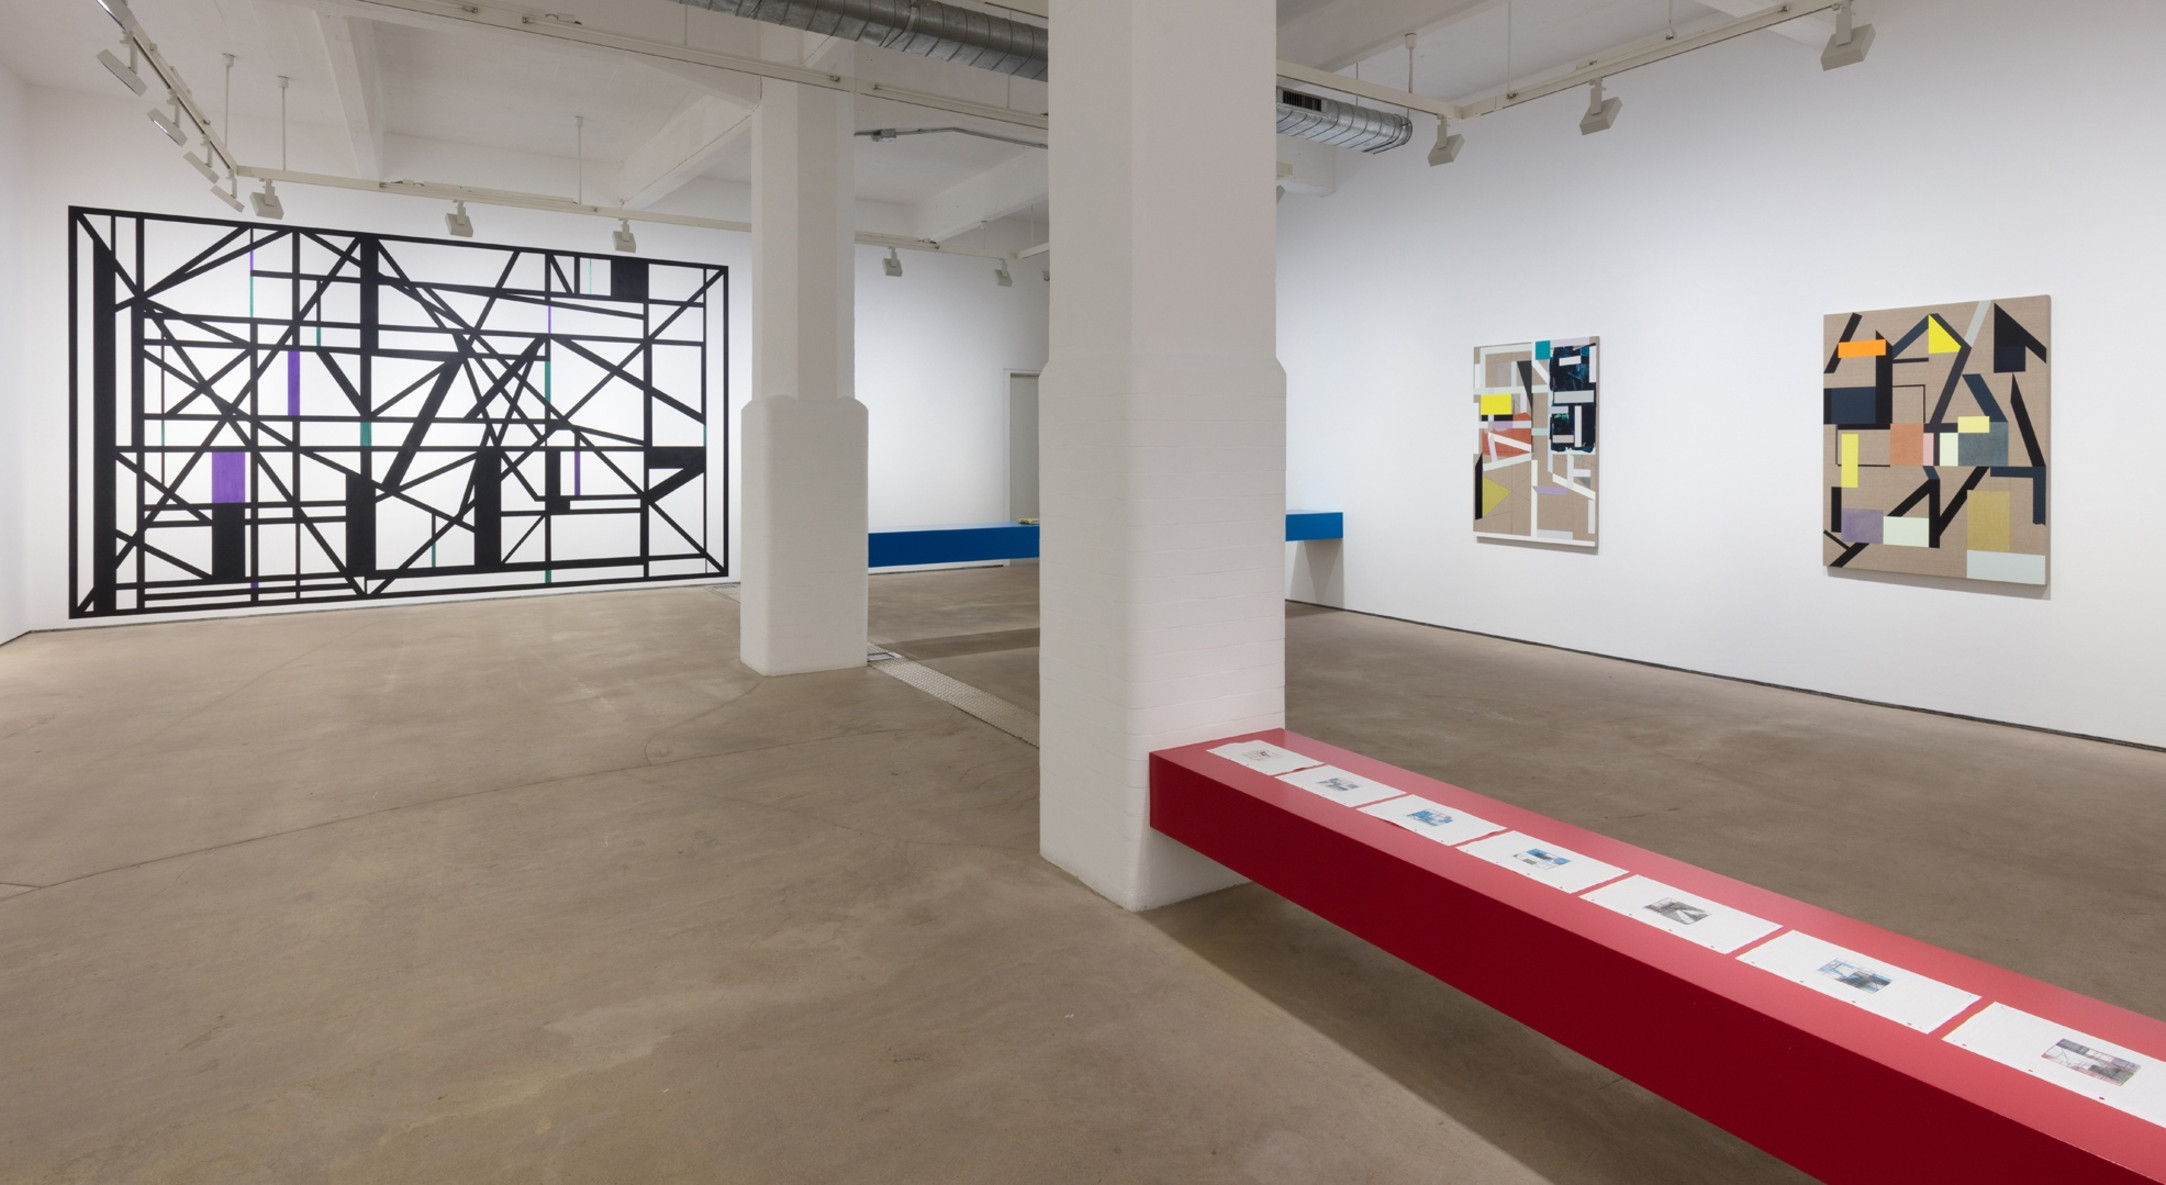 Installation view of Andrew Bick, Concrete-Disco-Systems, at Hales London 2019